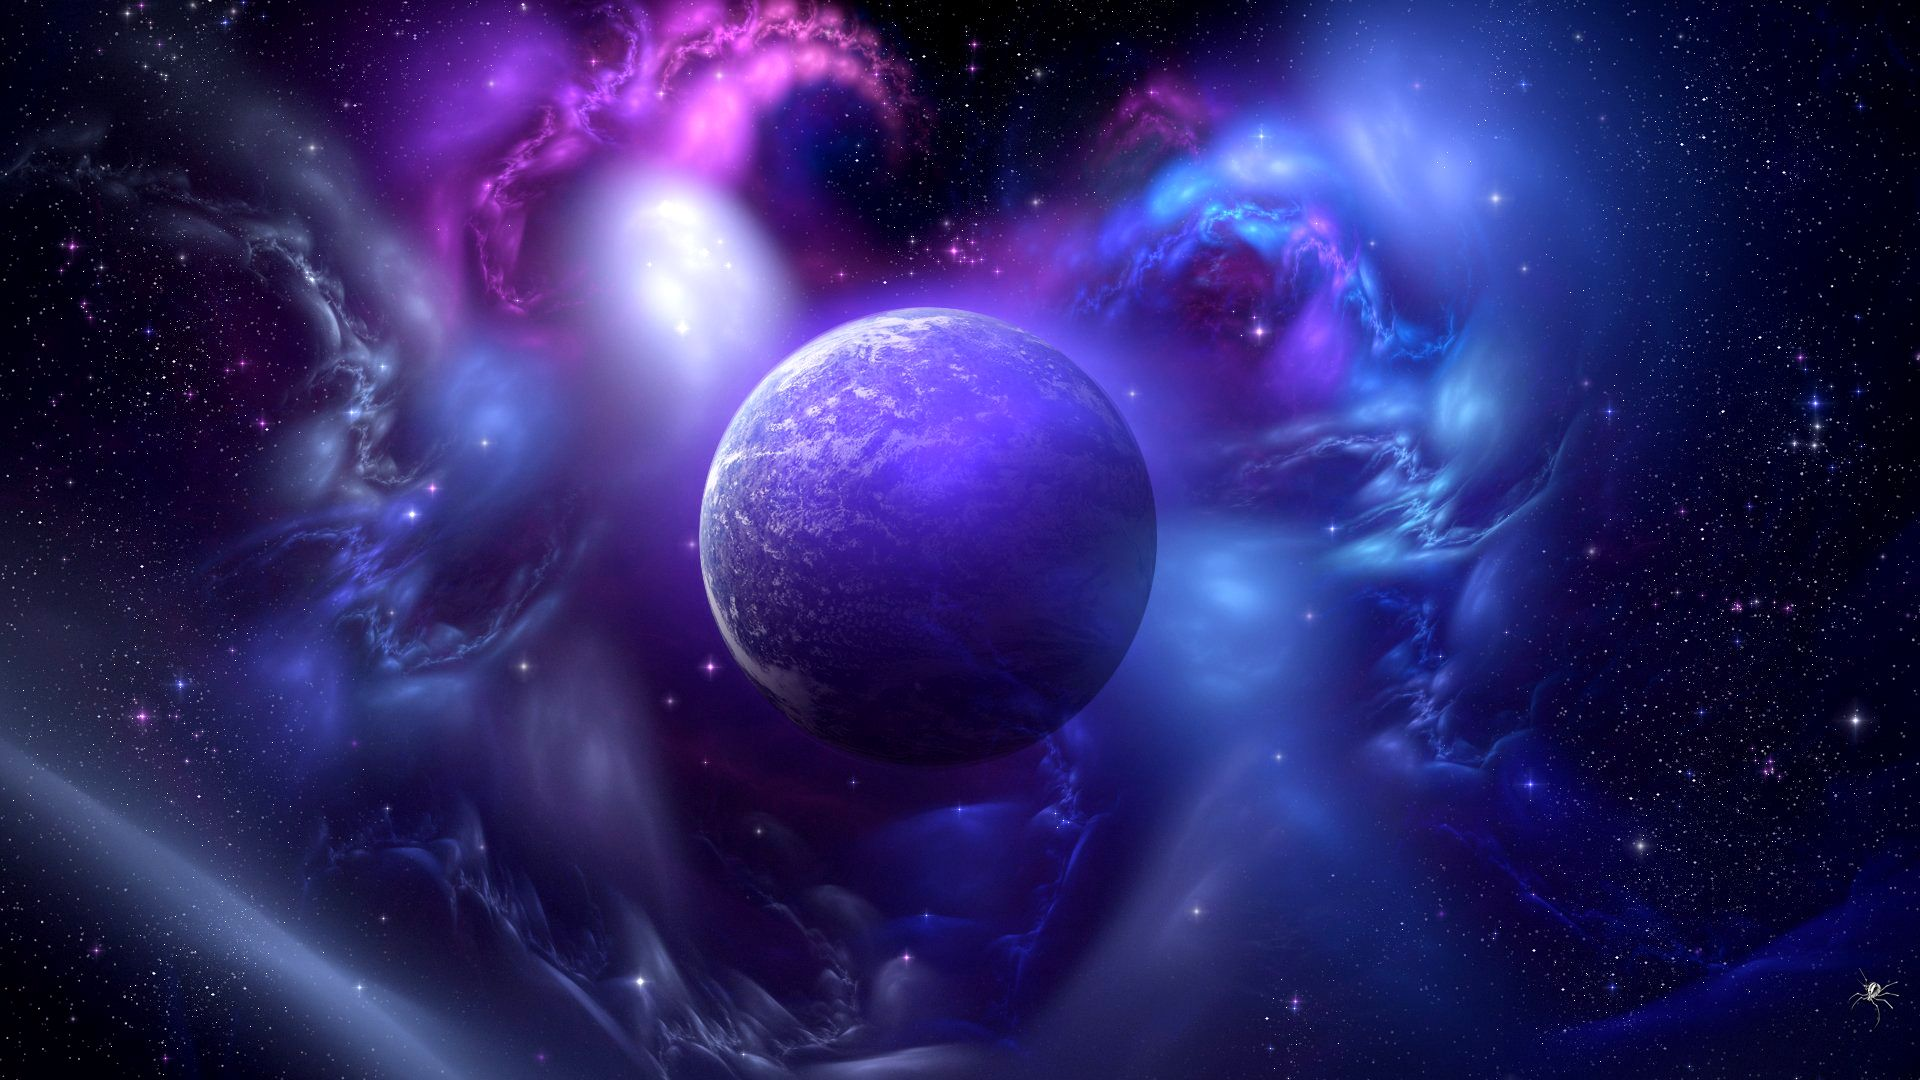 hd wallpapers 1080p hubble space - photo #10